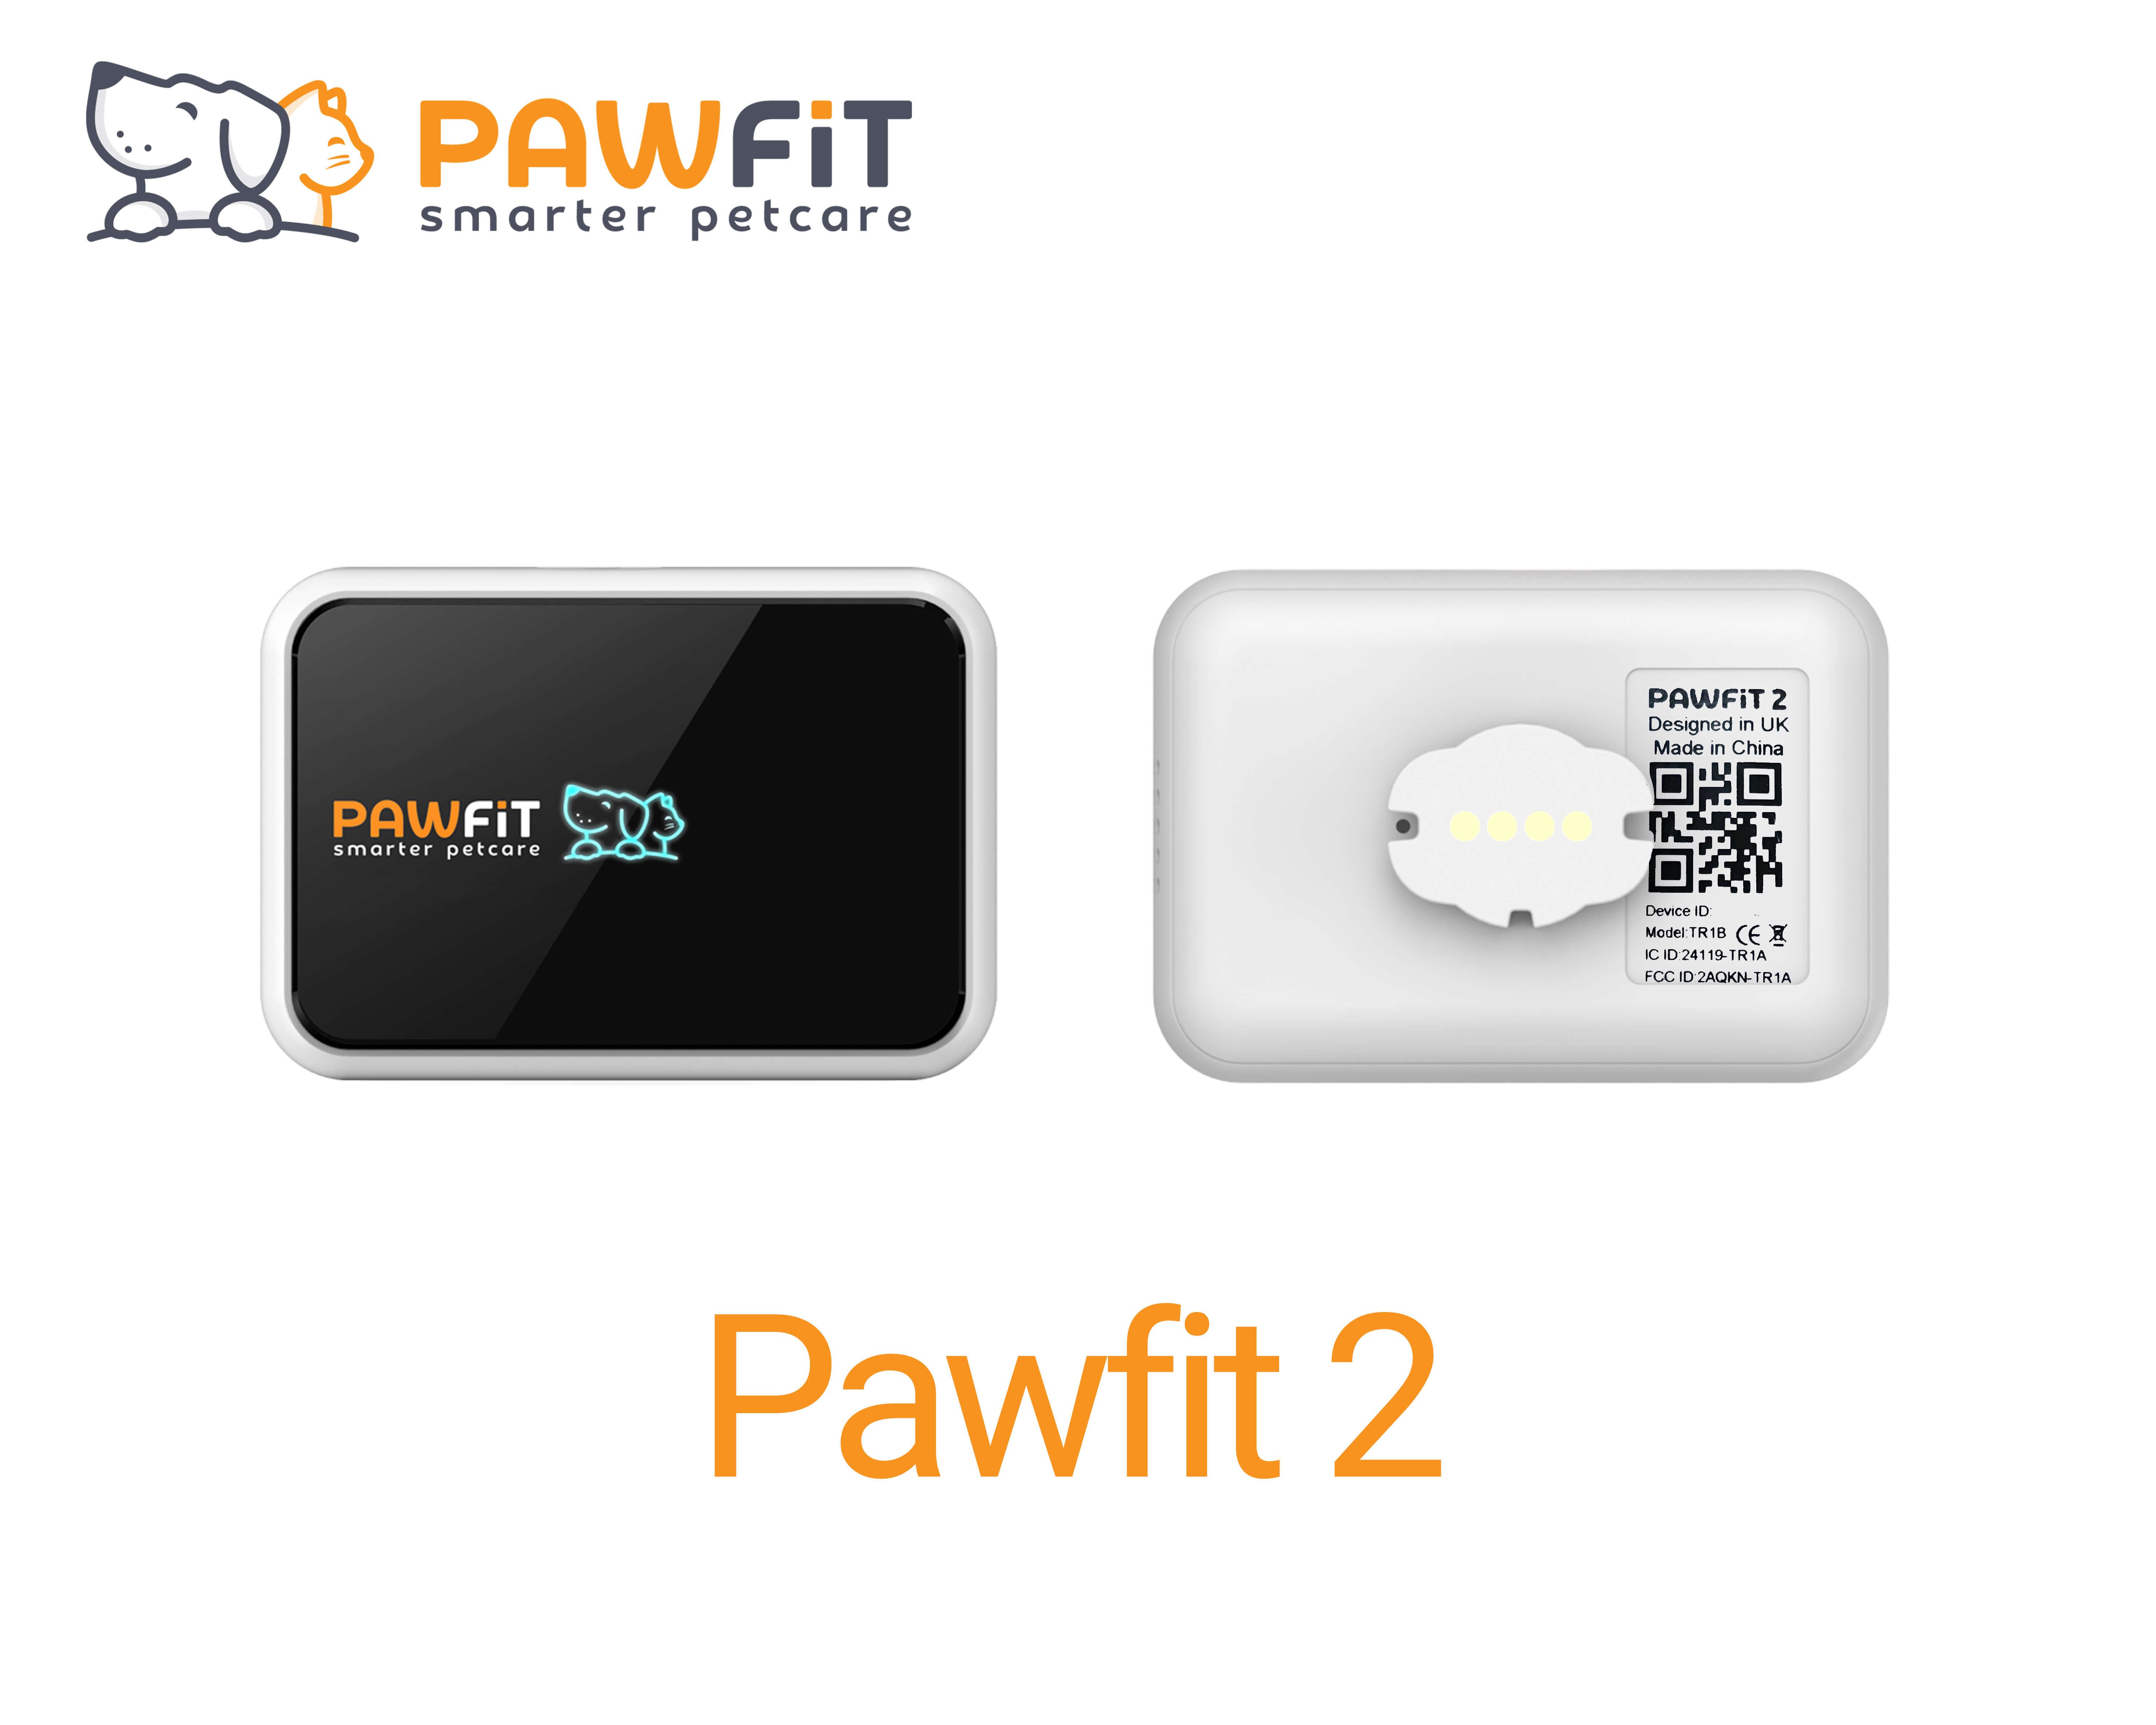 Pawfit 2 front and back